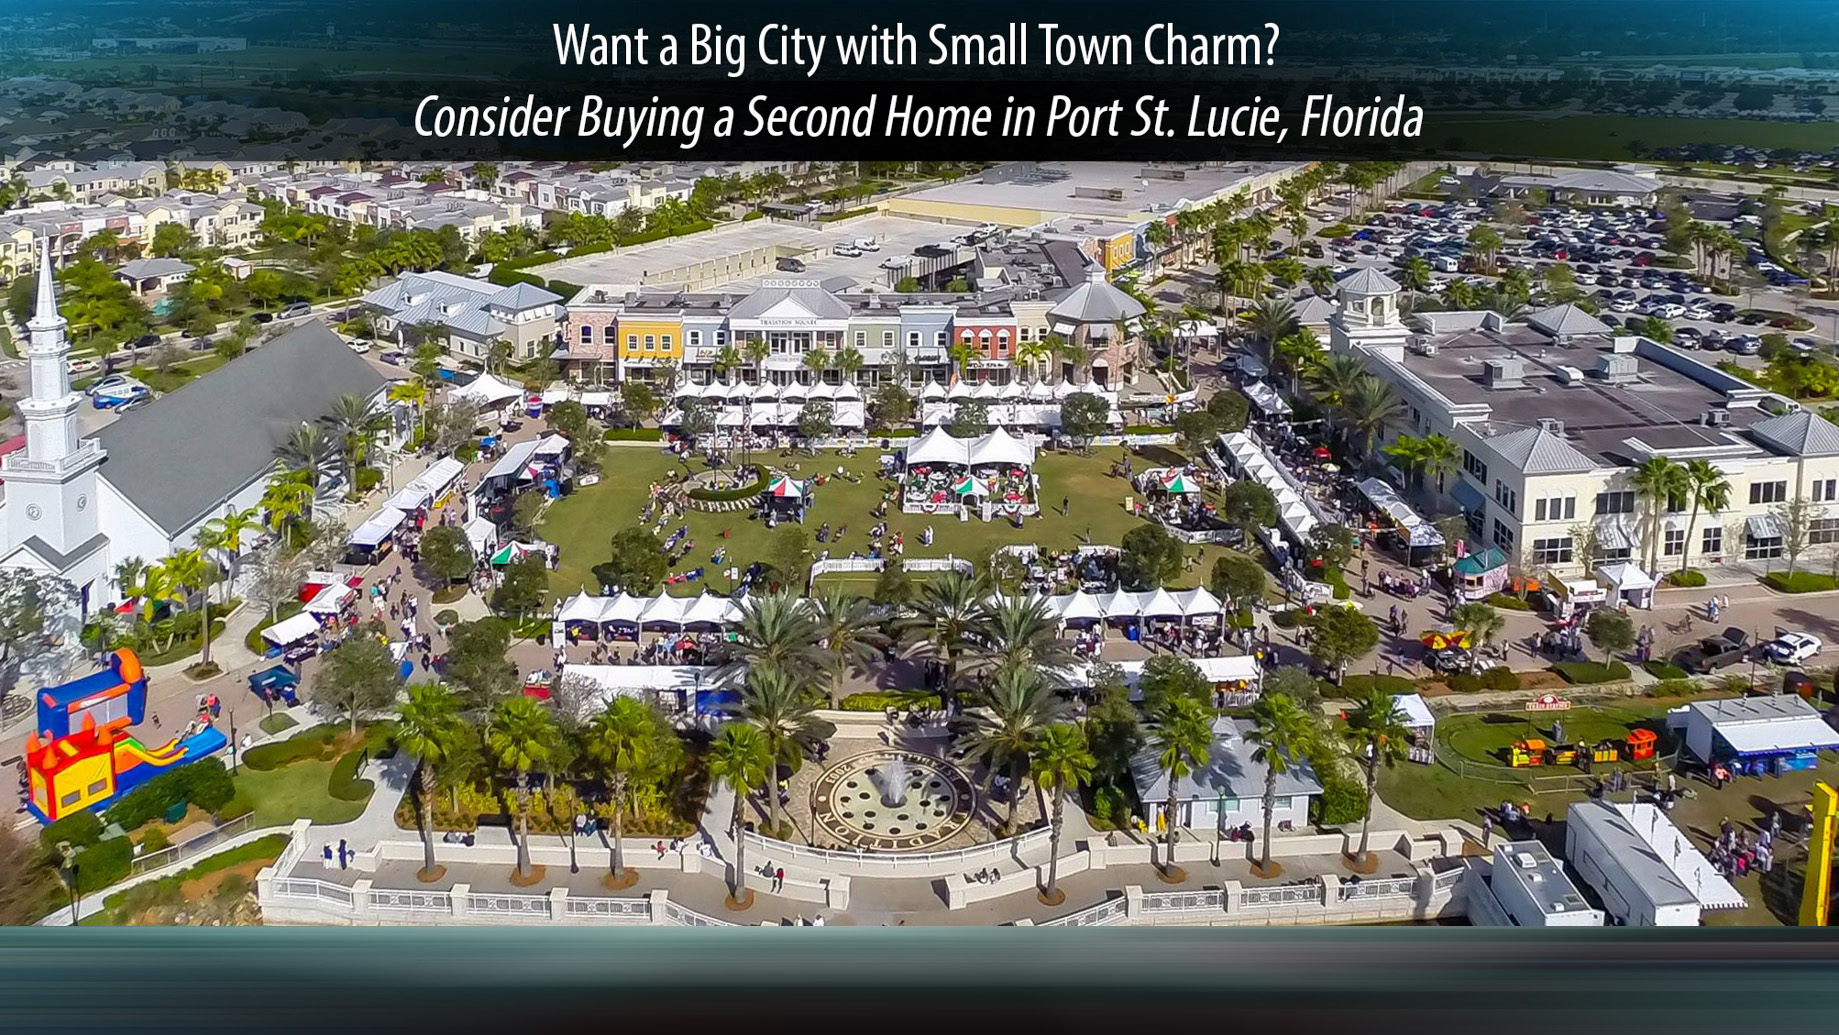 Want a Big City with Small Town Charm - Consider Buying a Second Home in Port St. Lucie, Florida